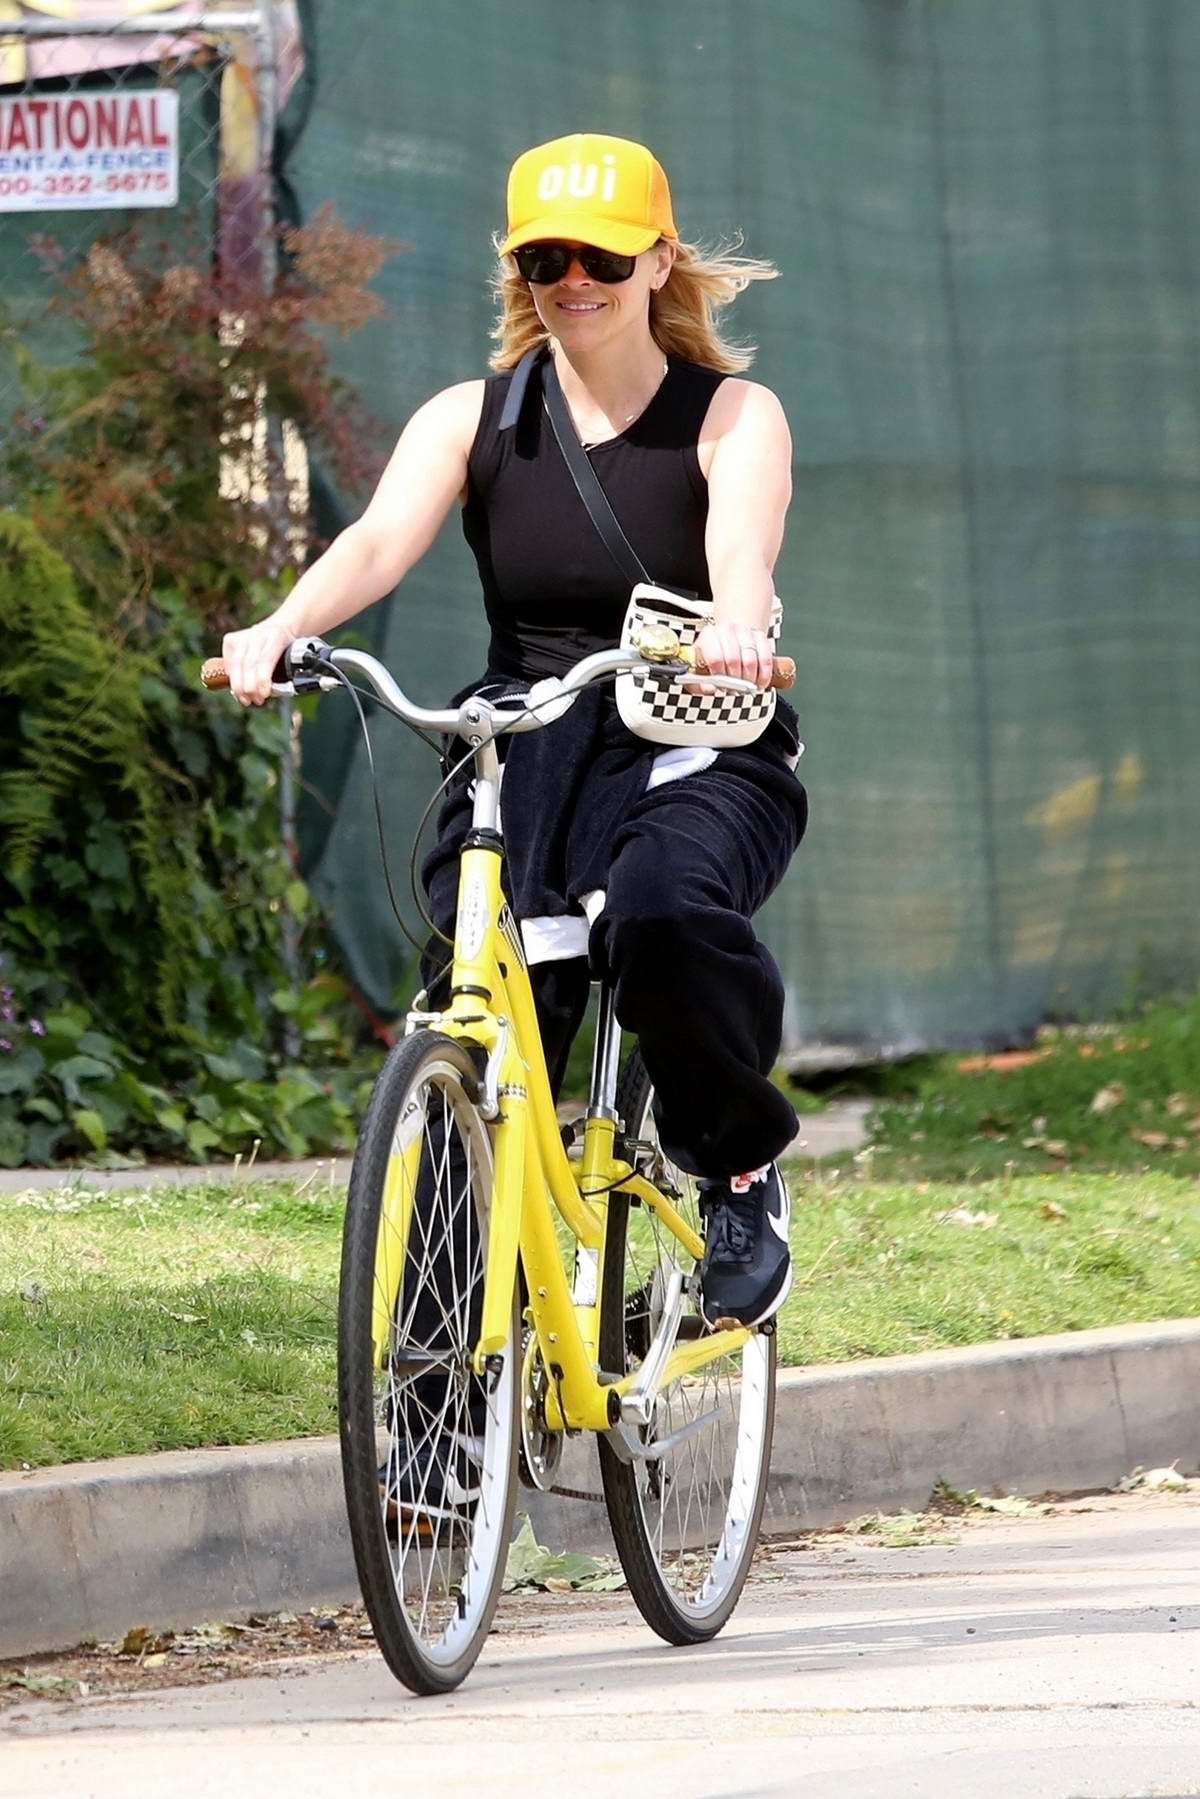 Reese Witherspoon goes for a power walk before riding a bicycle through the neighborhood in Pacific Palisades, California